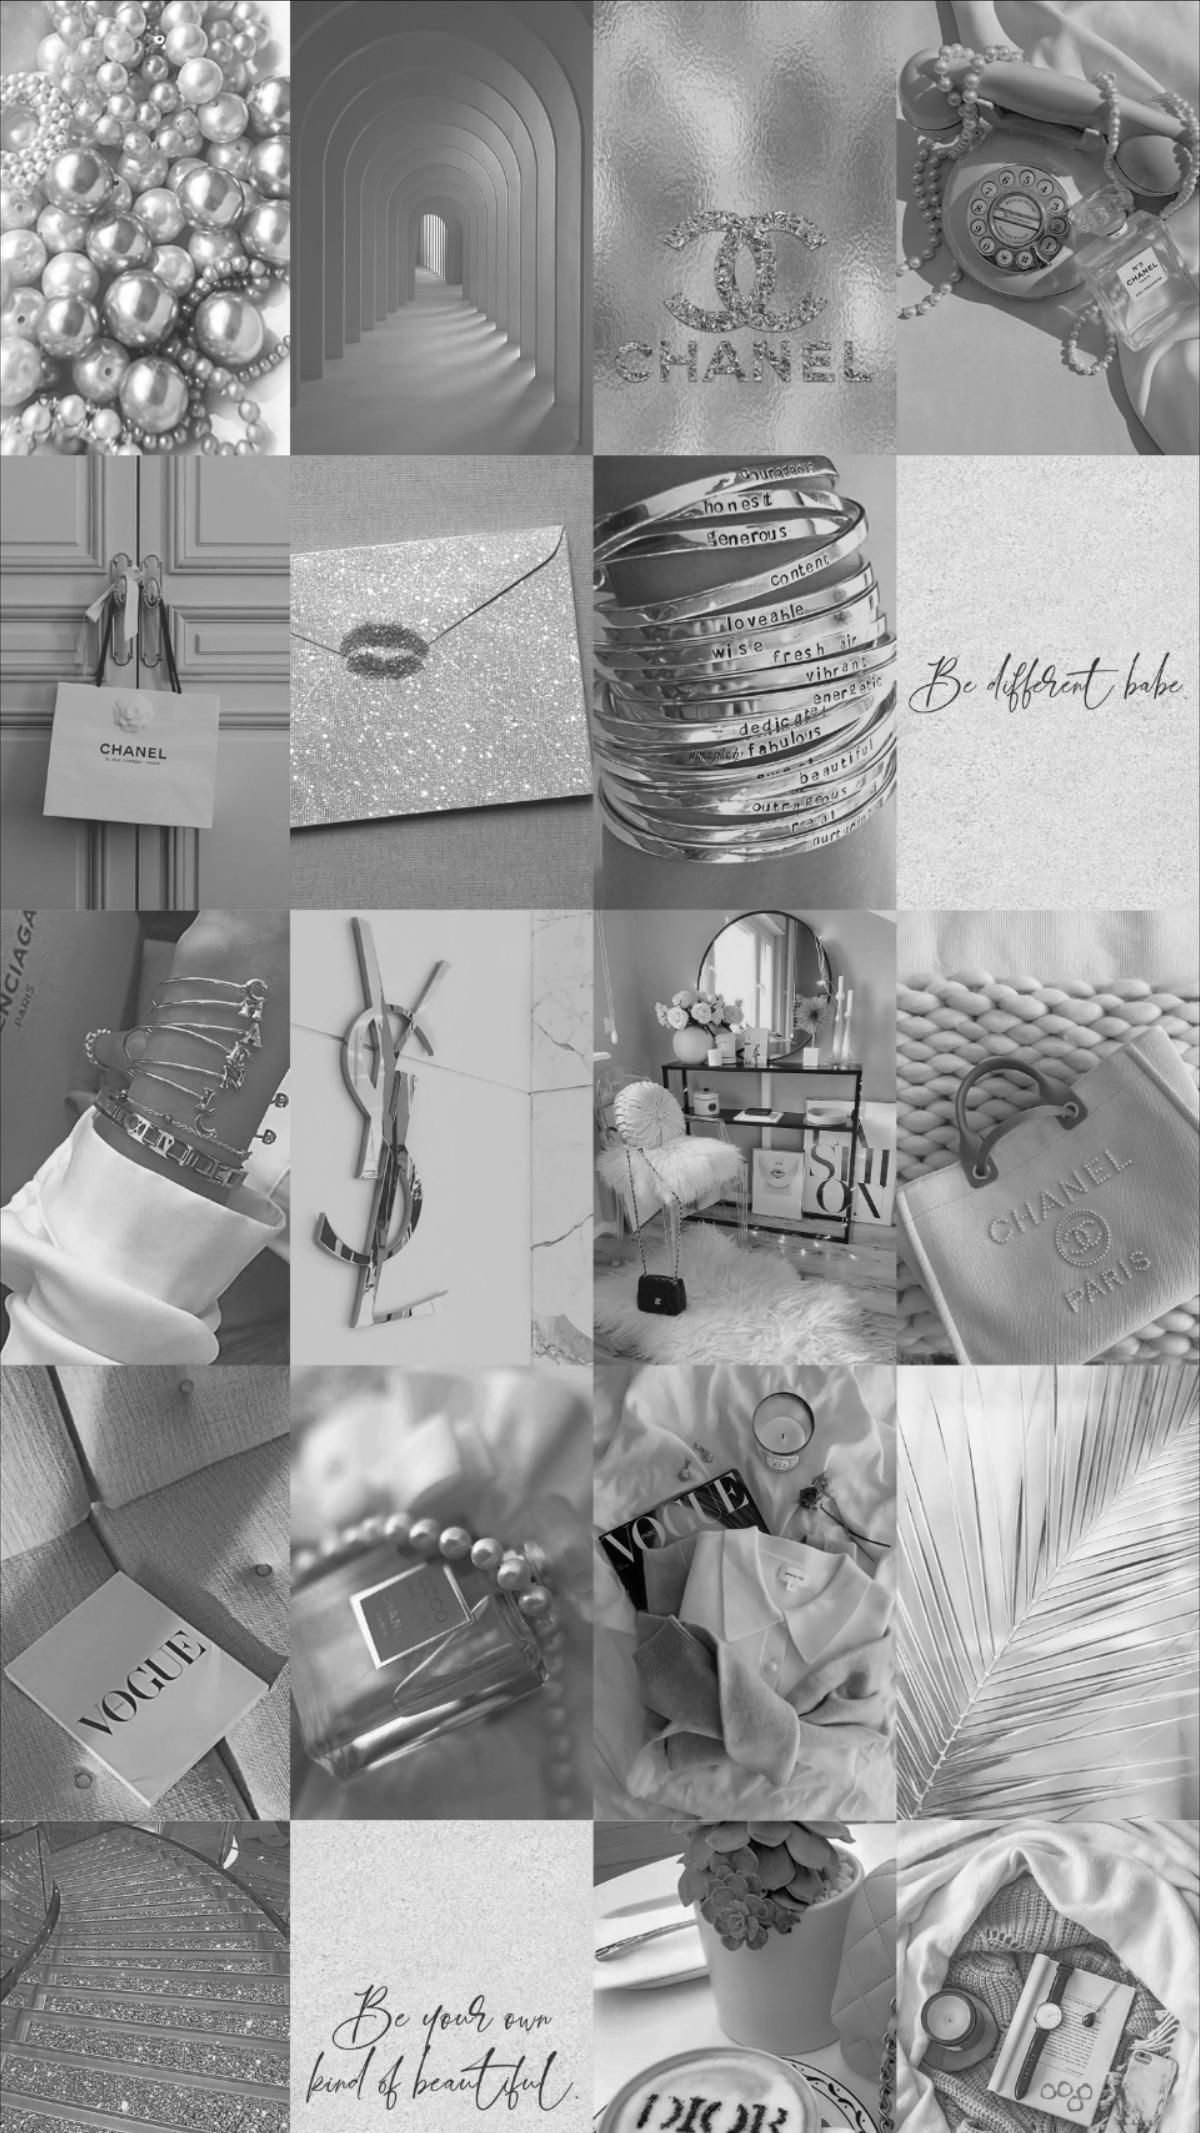 Spice up your room with this grey aesthetic wall collage kit!